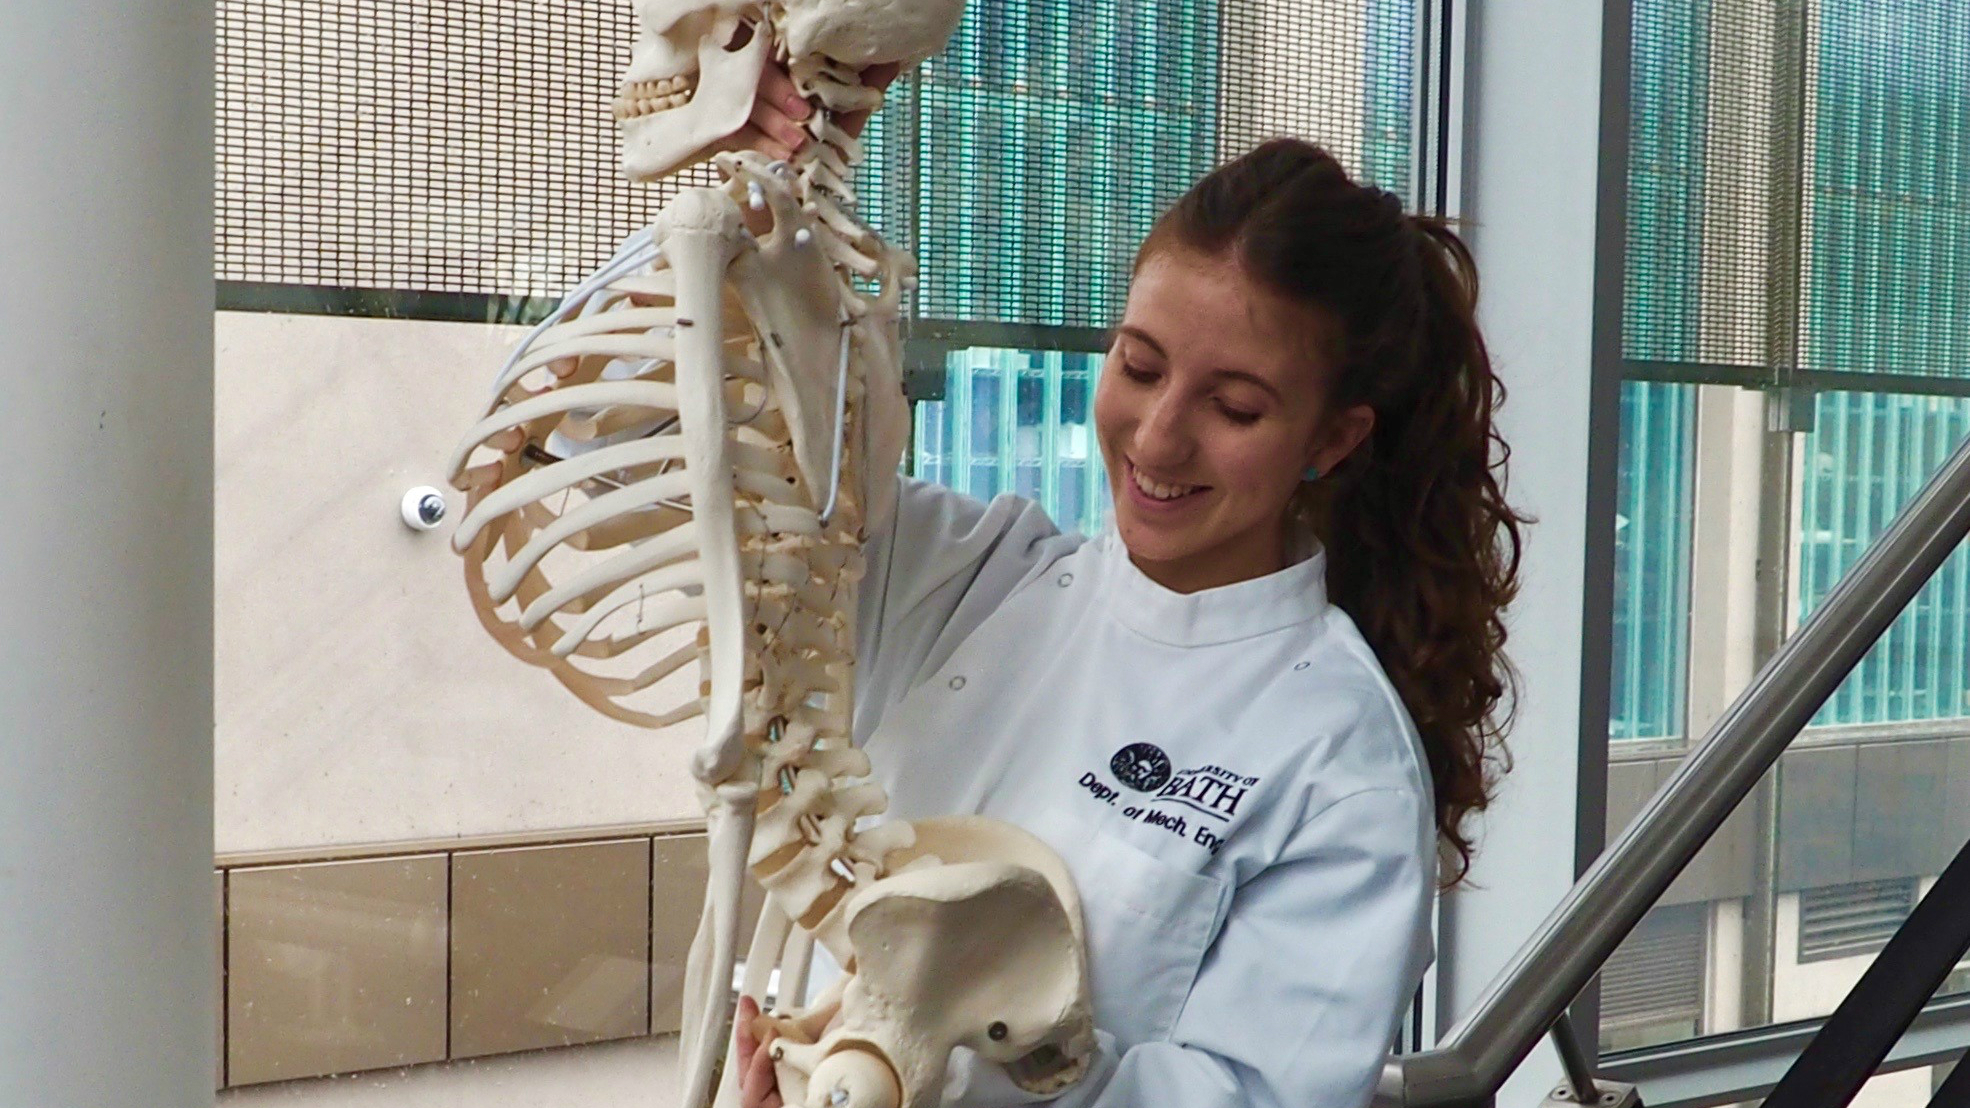 Sonia Ramos Pascual holding the model of a human skeleton